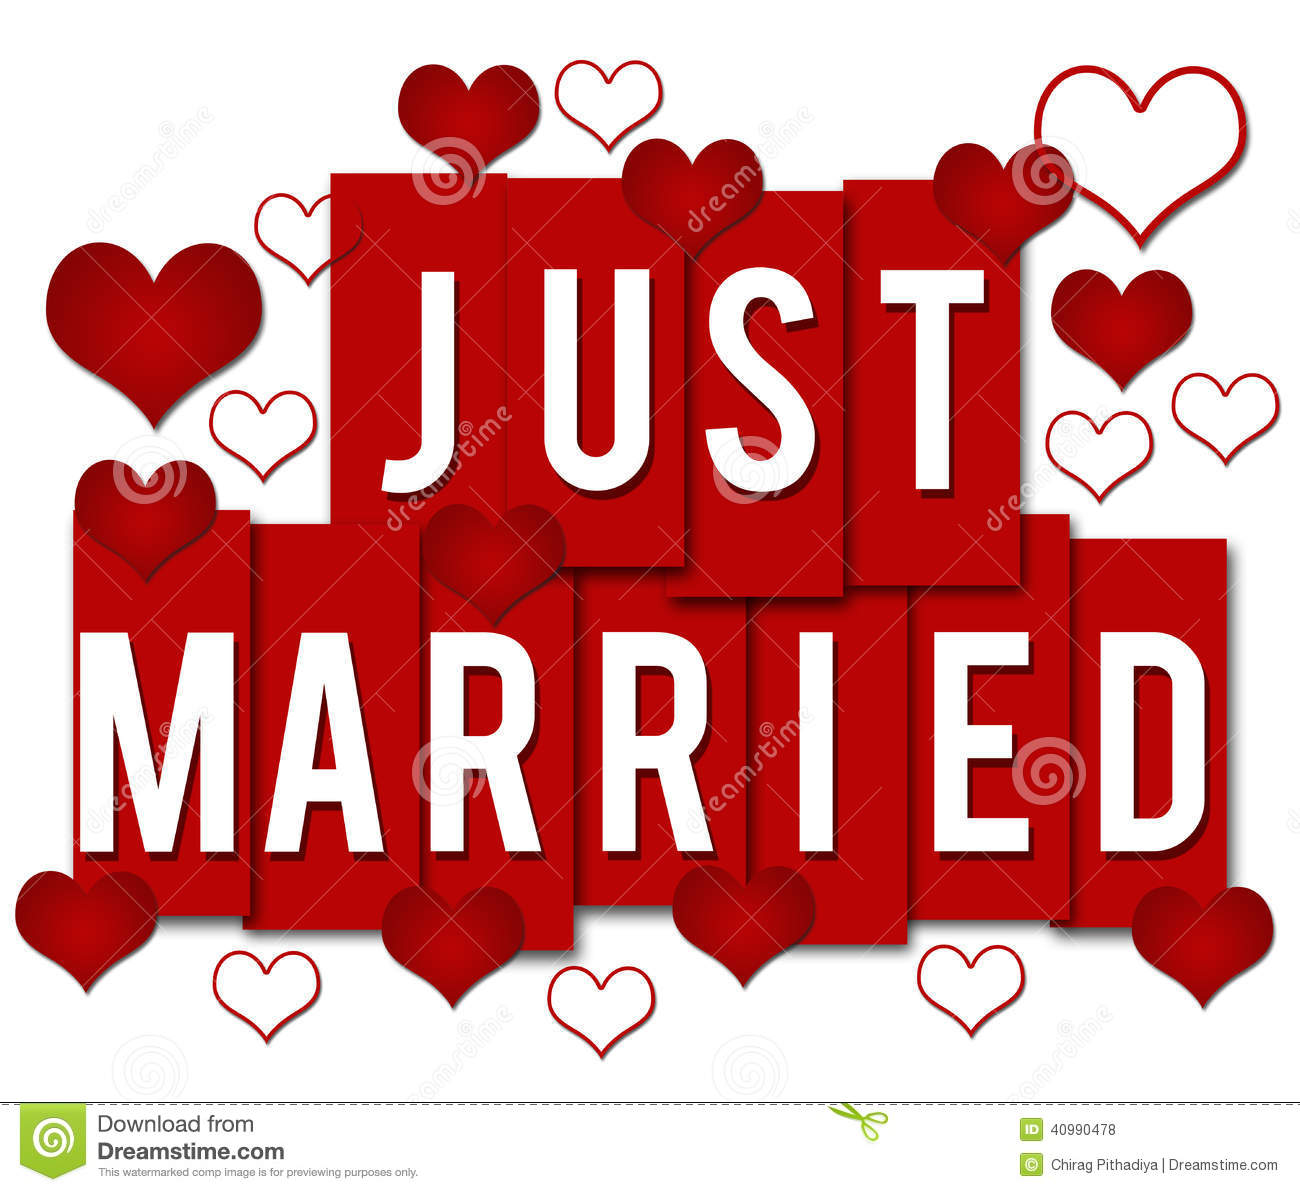 Just Married Red Stripes Stock Illustration - Image: 40990478